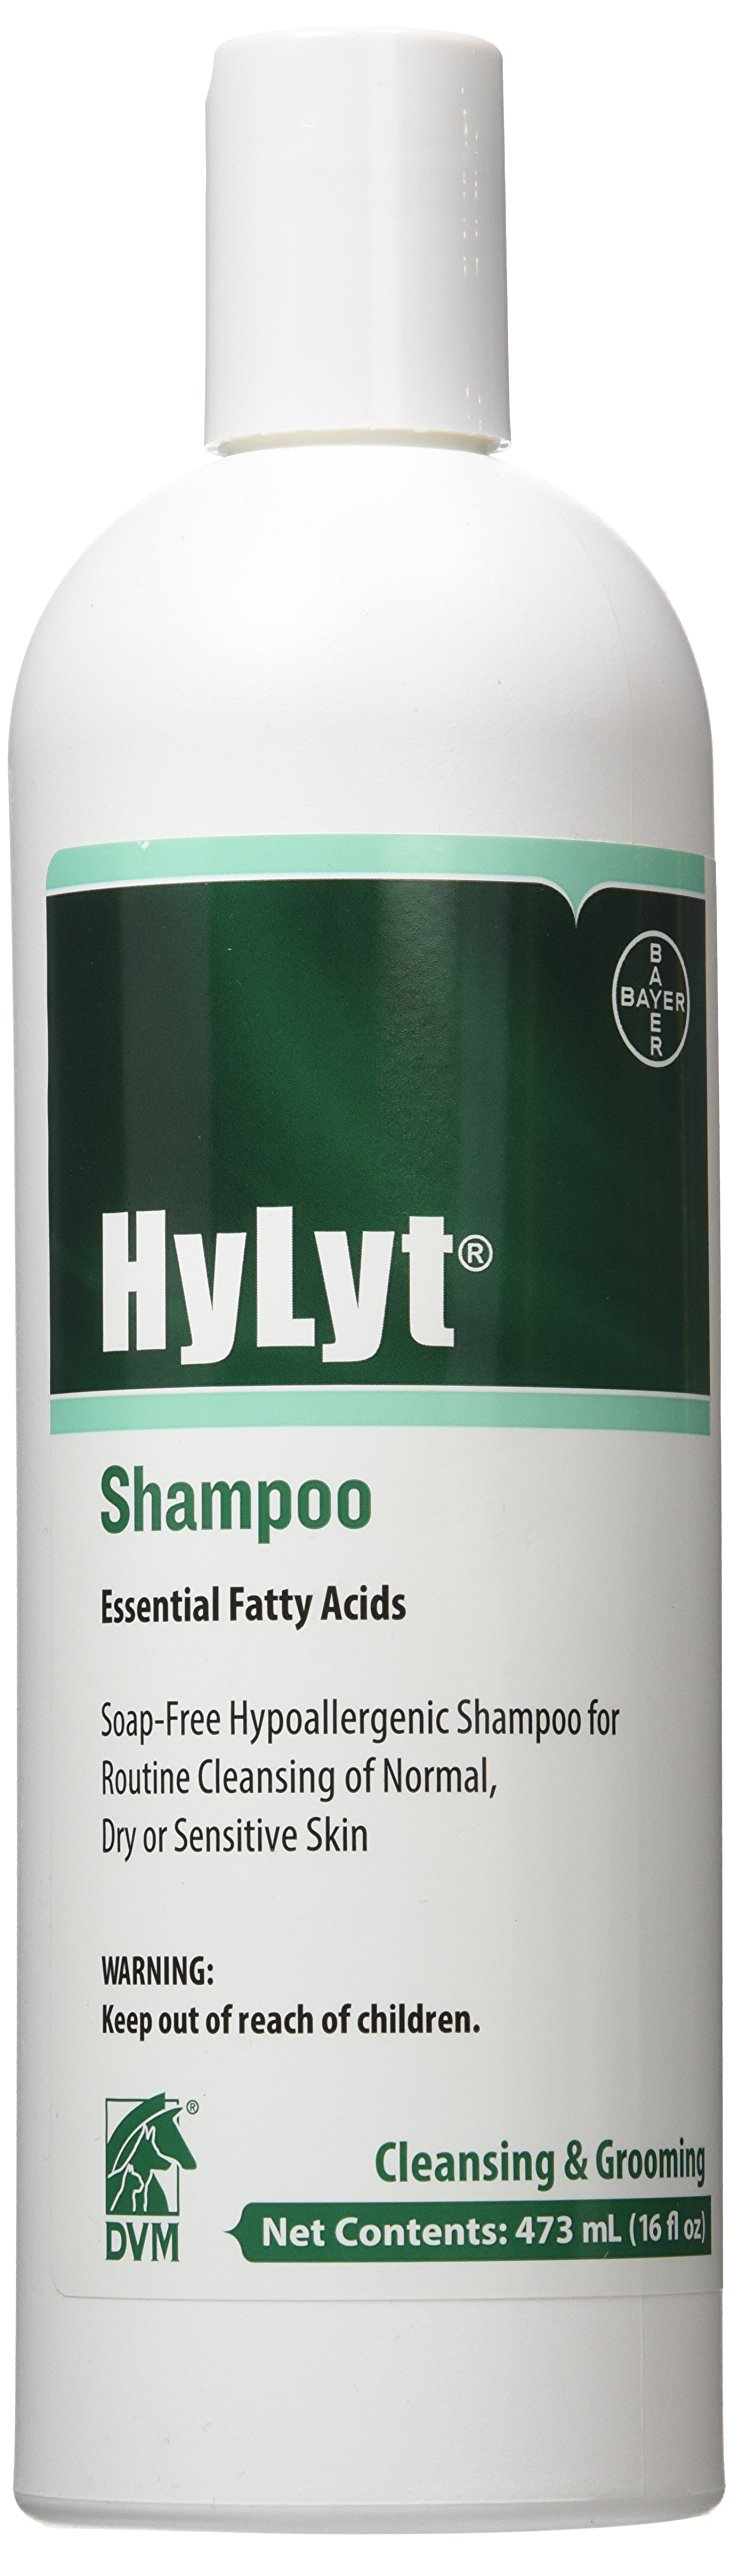 Bayer Hylyt Pet Shampoo, 16-Ounce